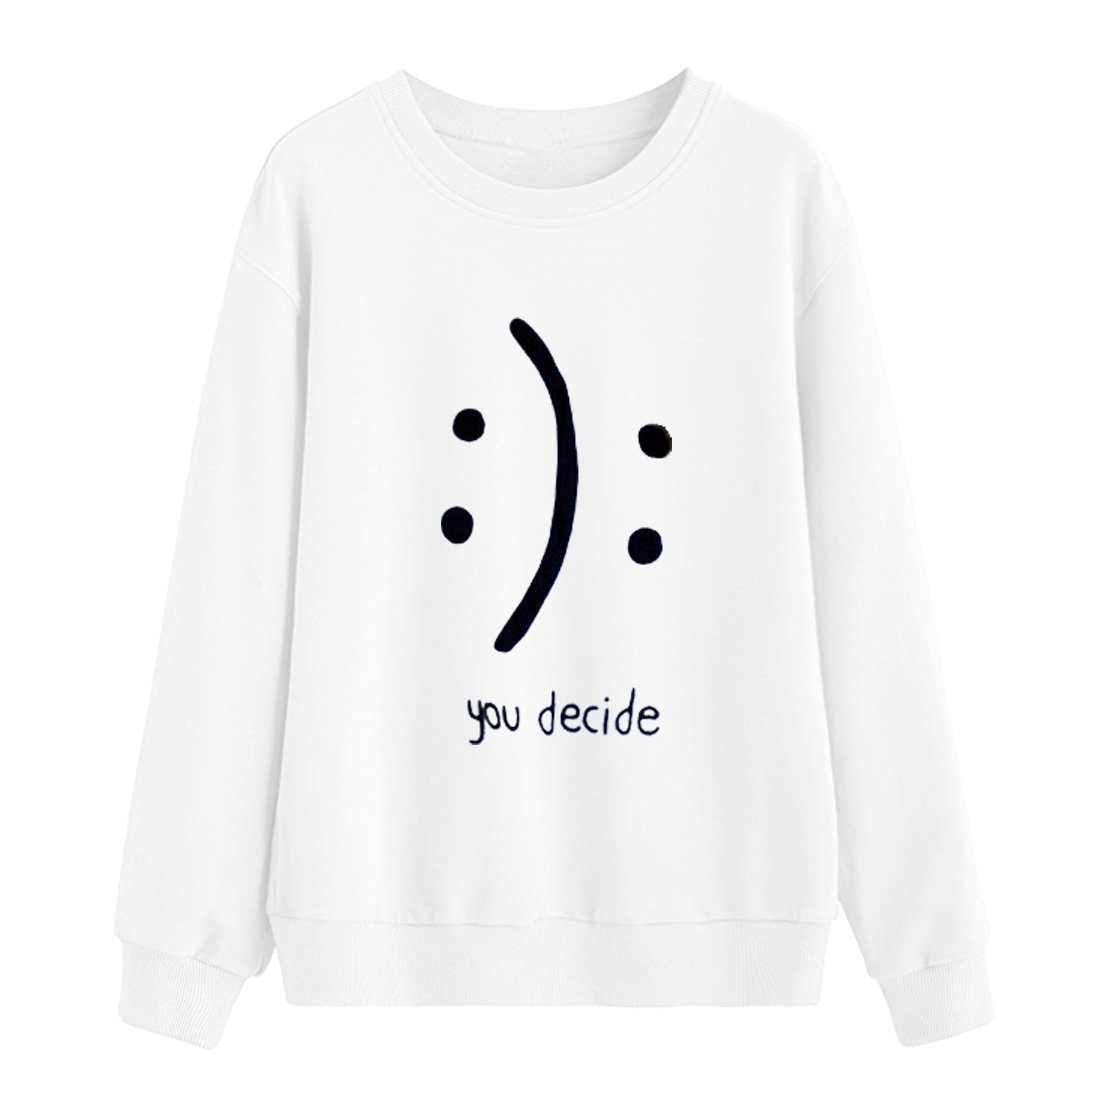 BLACKMYTH Women Round Neck Sweaters Graphic Cute Pullover Long Sleeve Funny Sweatshirts White Small